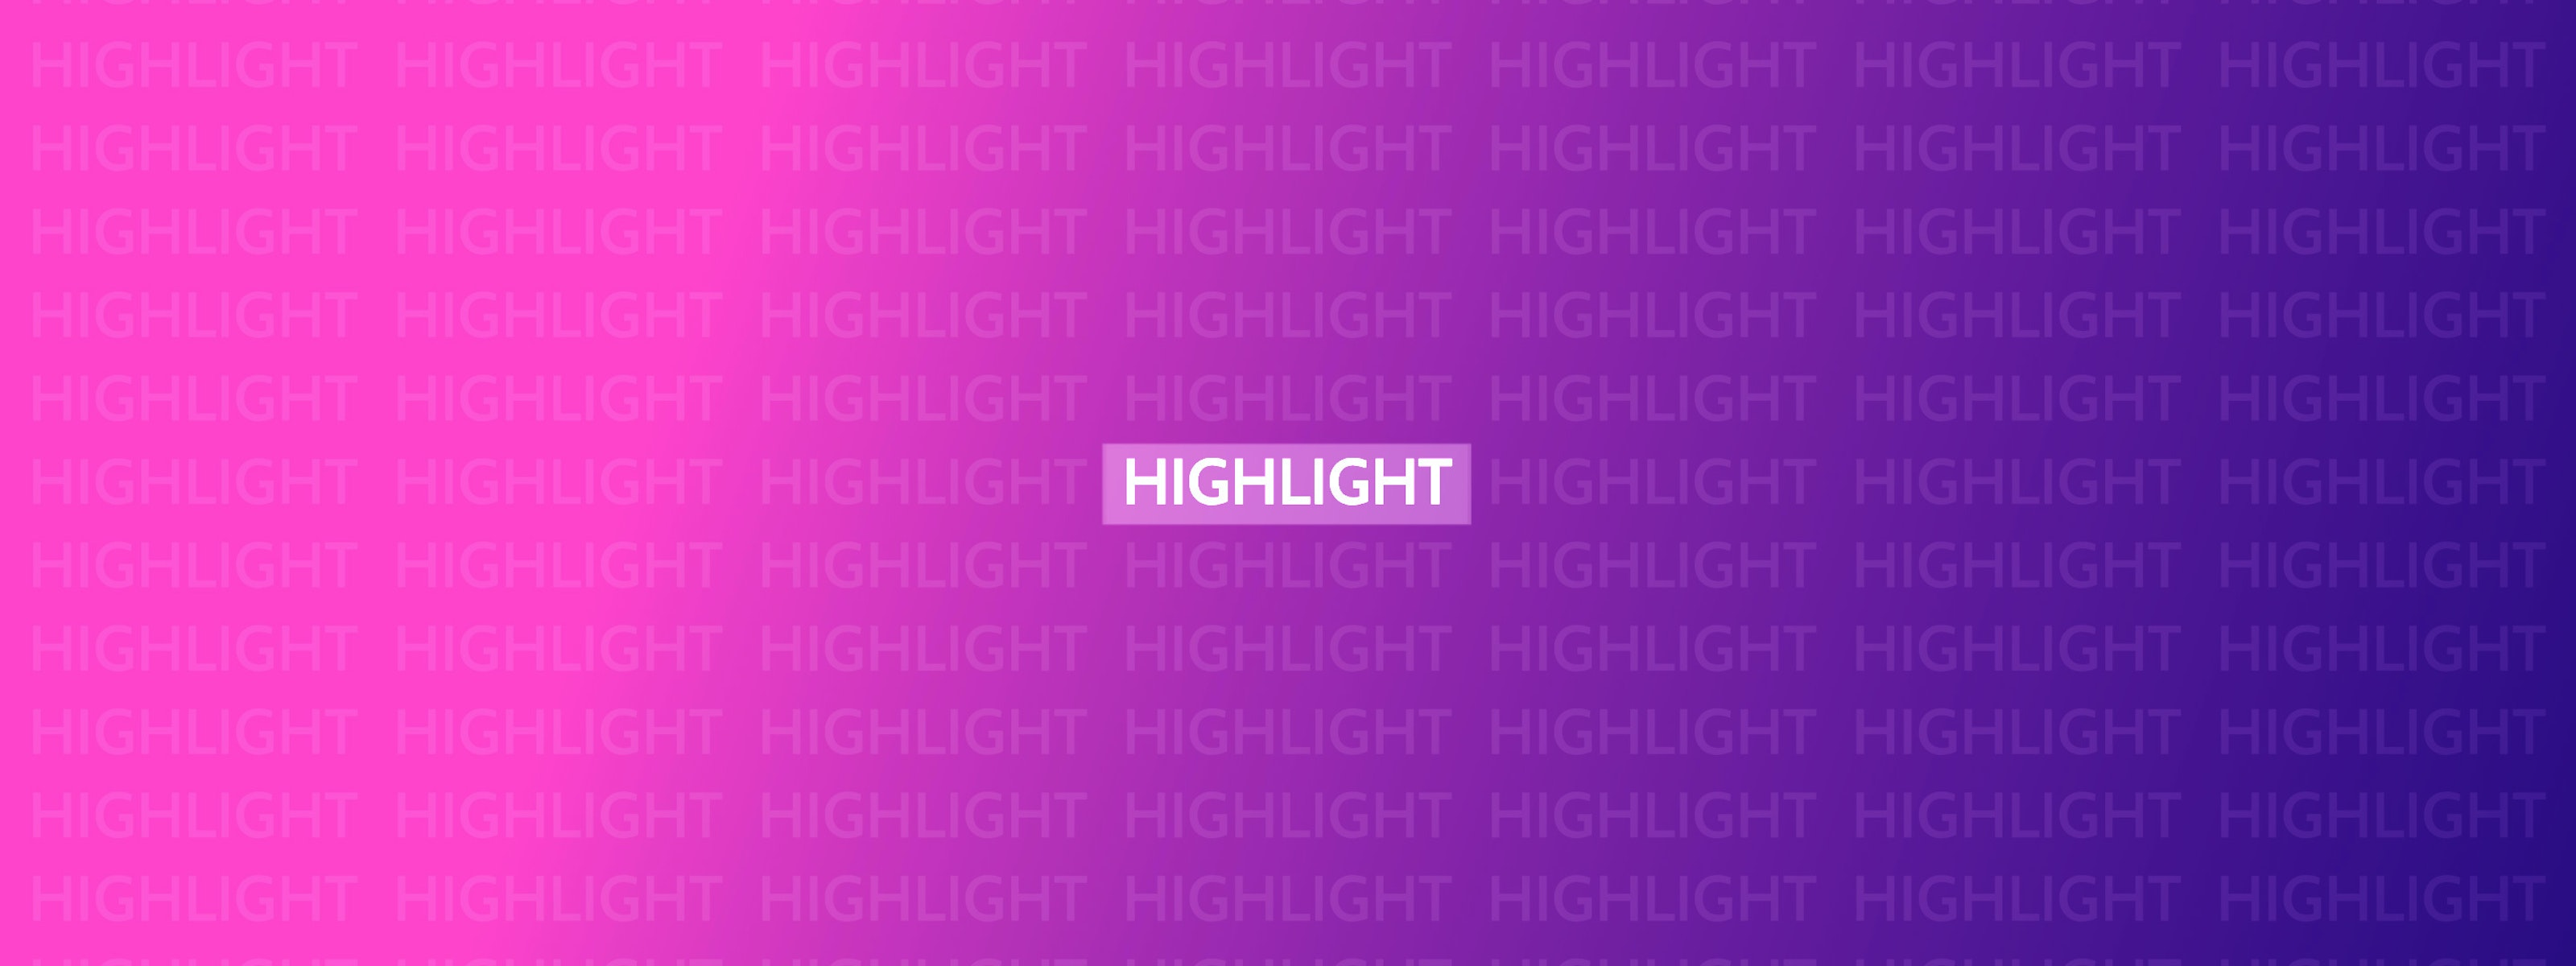 How To Highlight Things In Your Video in Premiere Pro